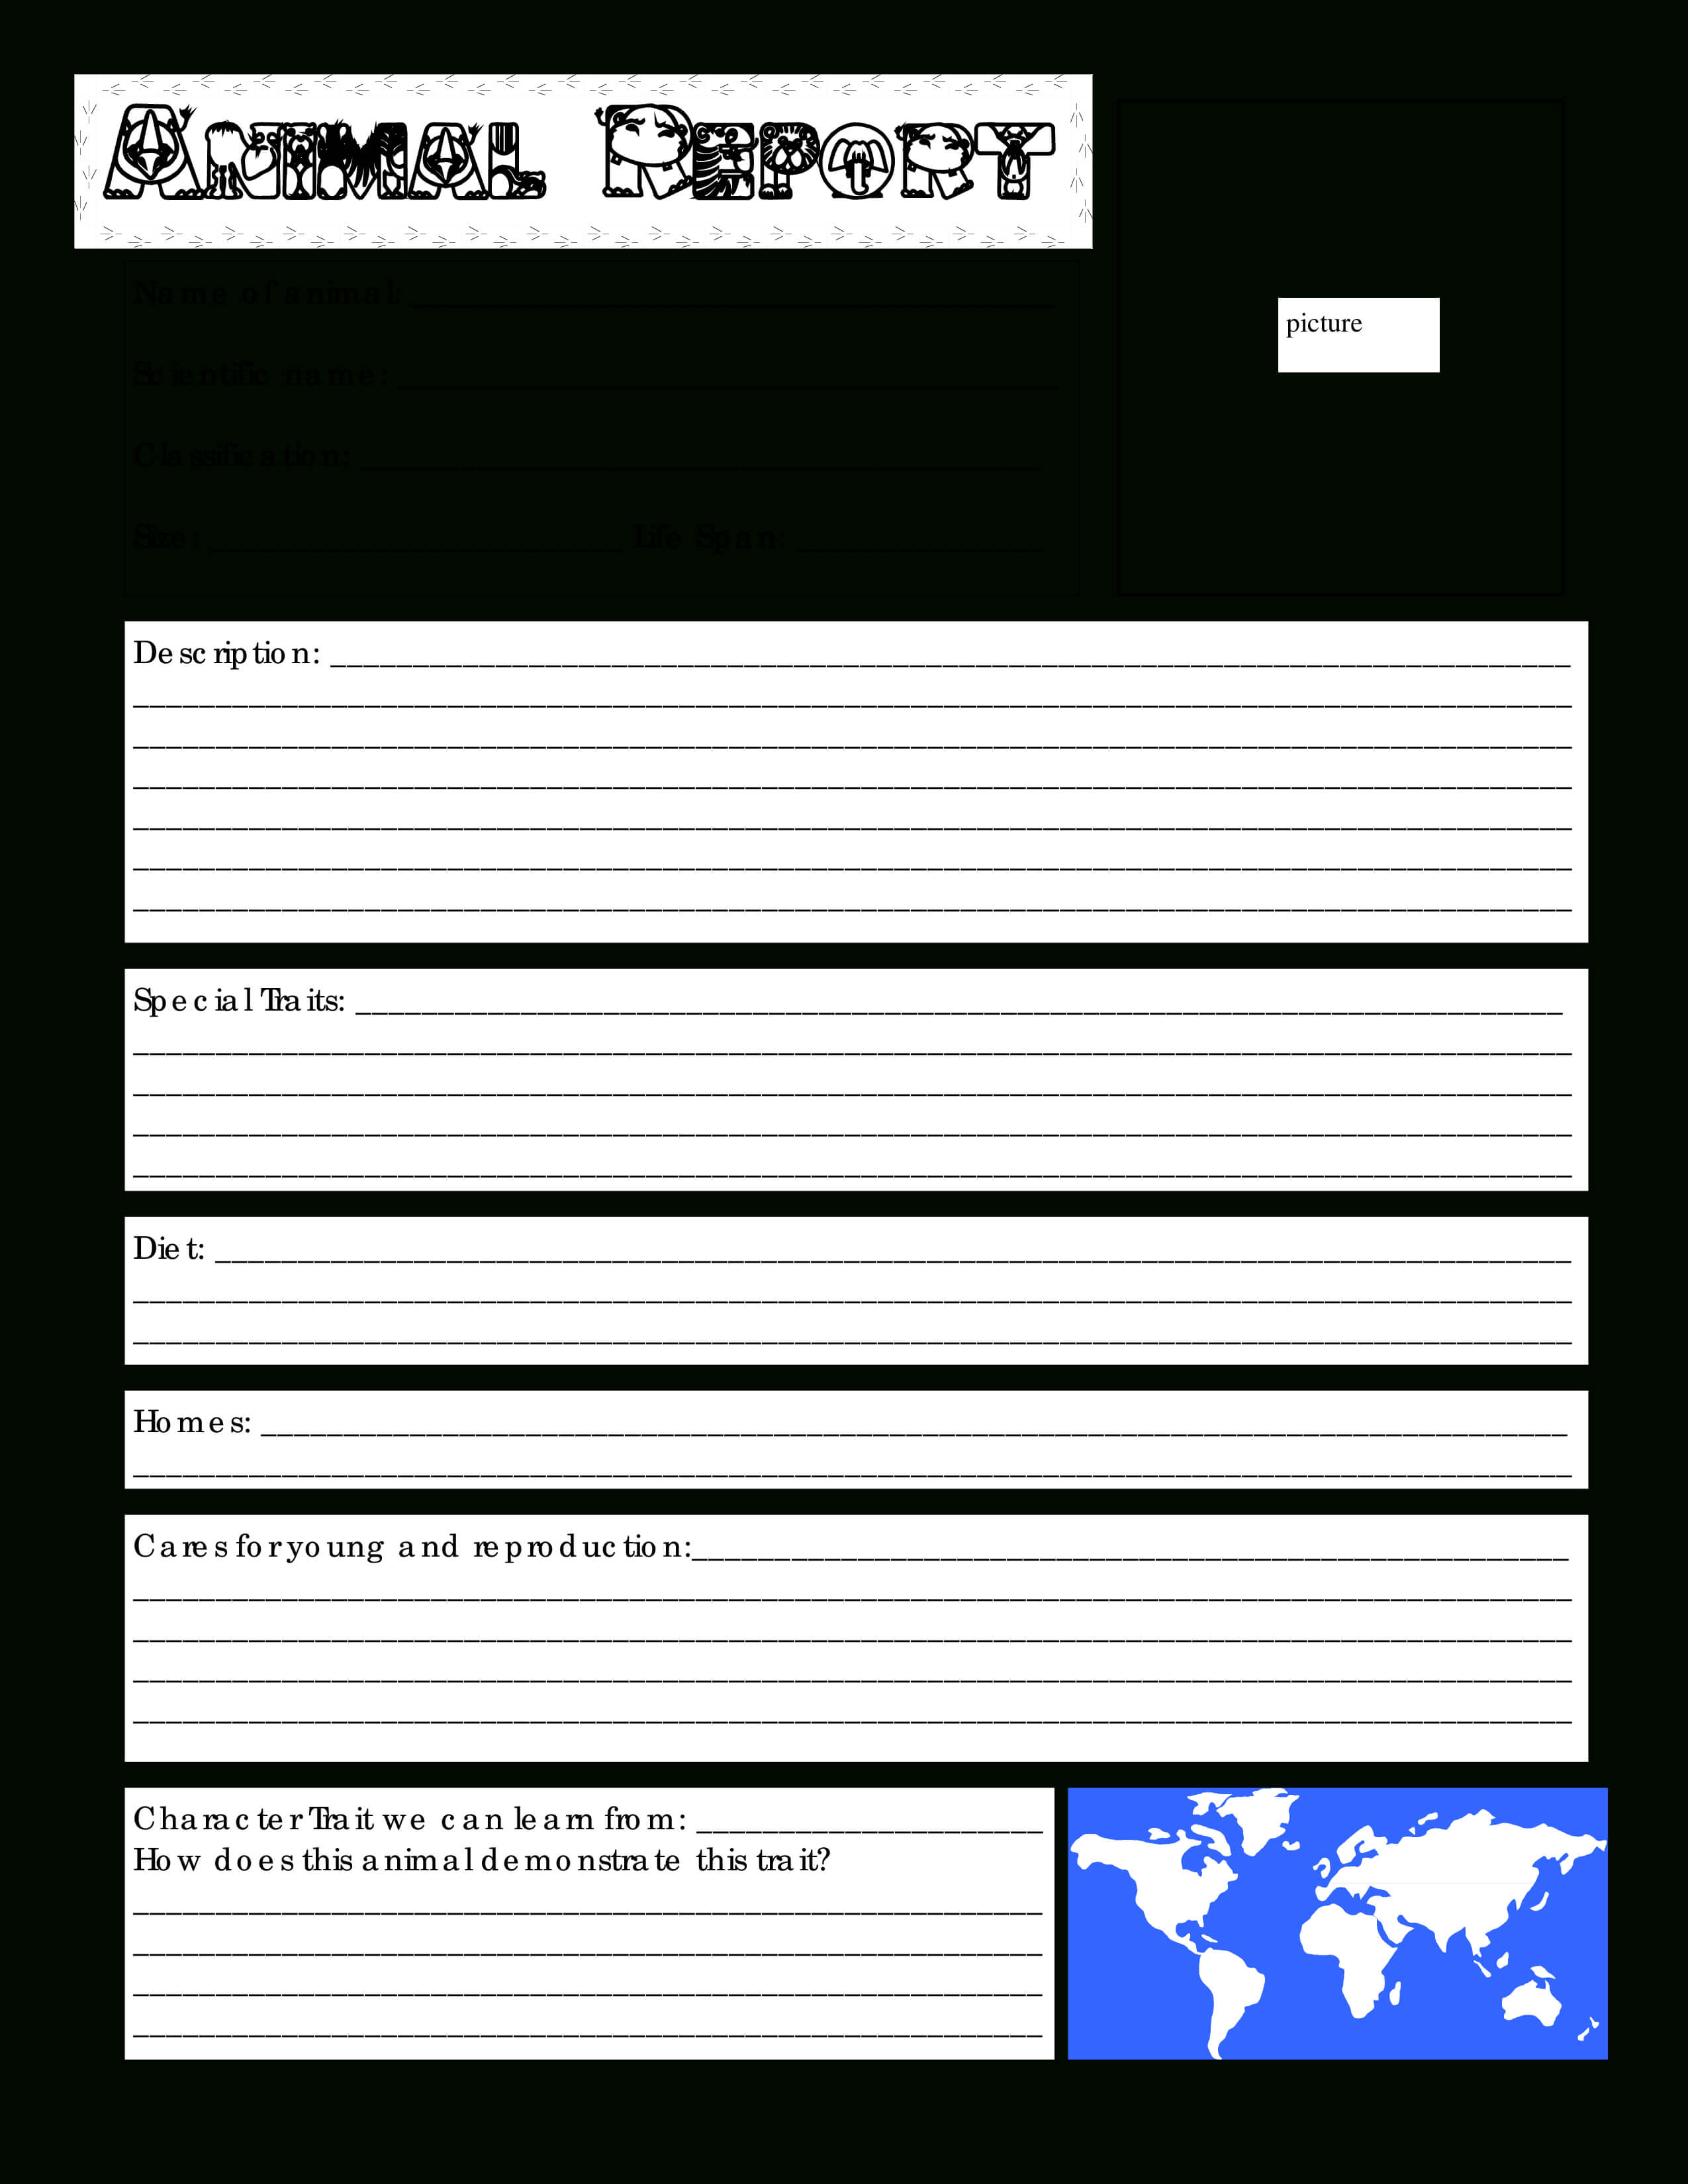 Blank Animal Report | Templates At Allbusinesstemplates inside Animal Report Template